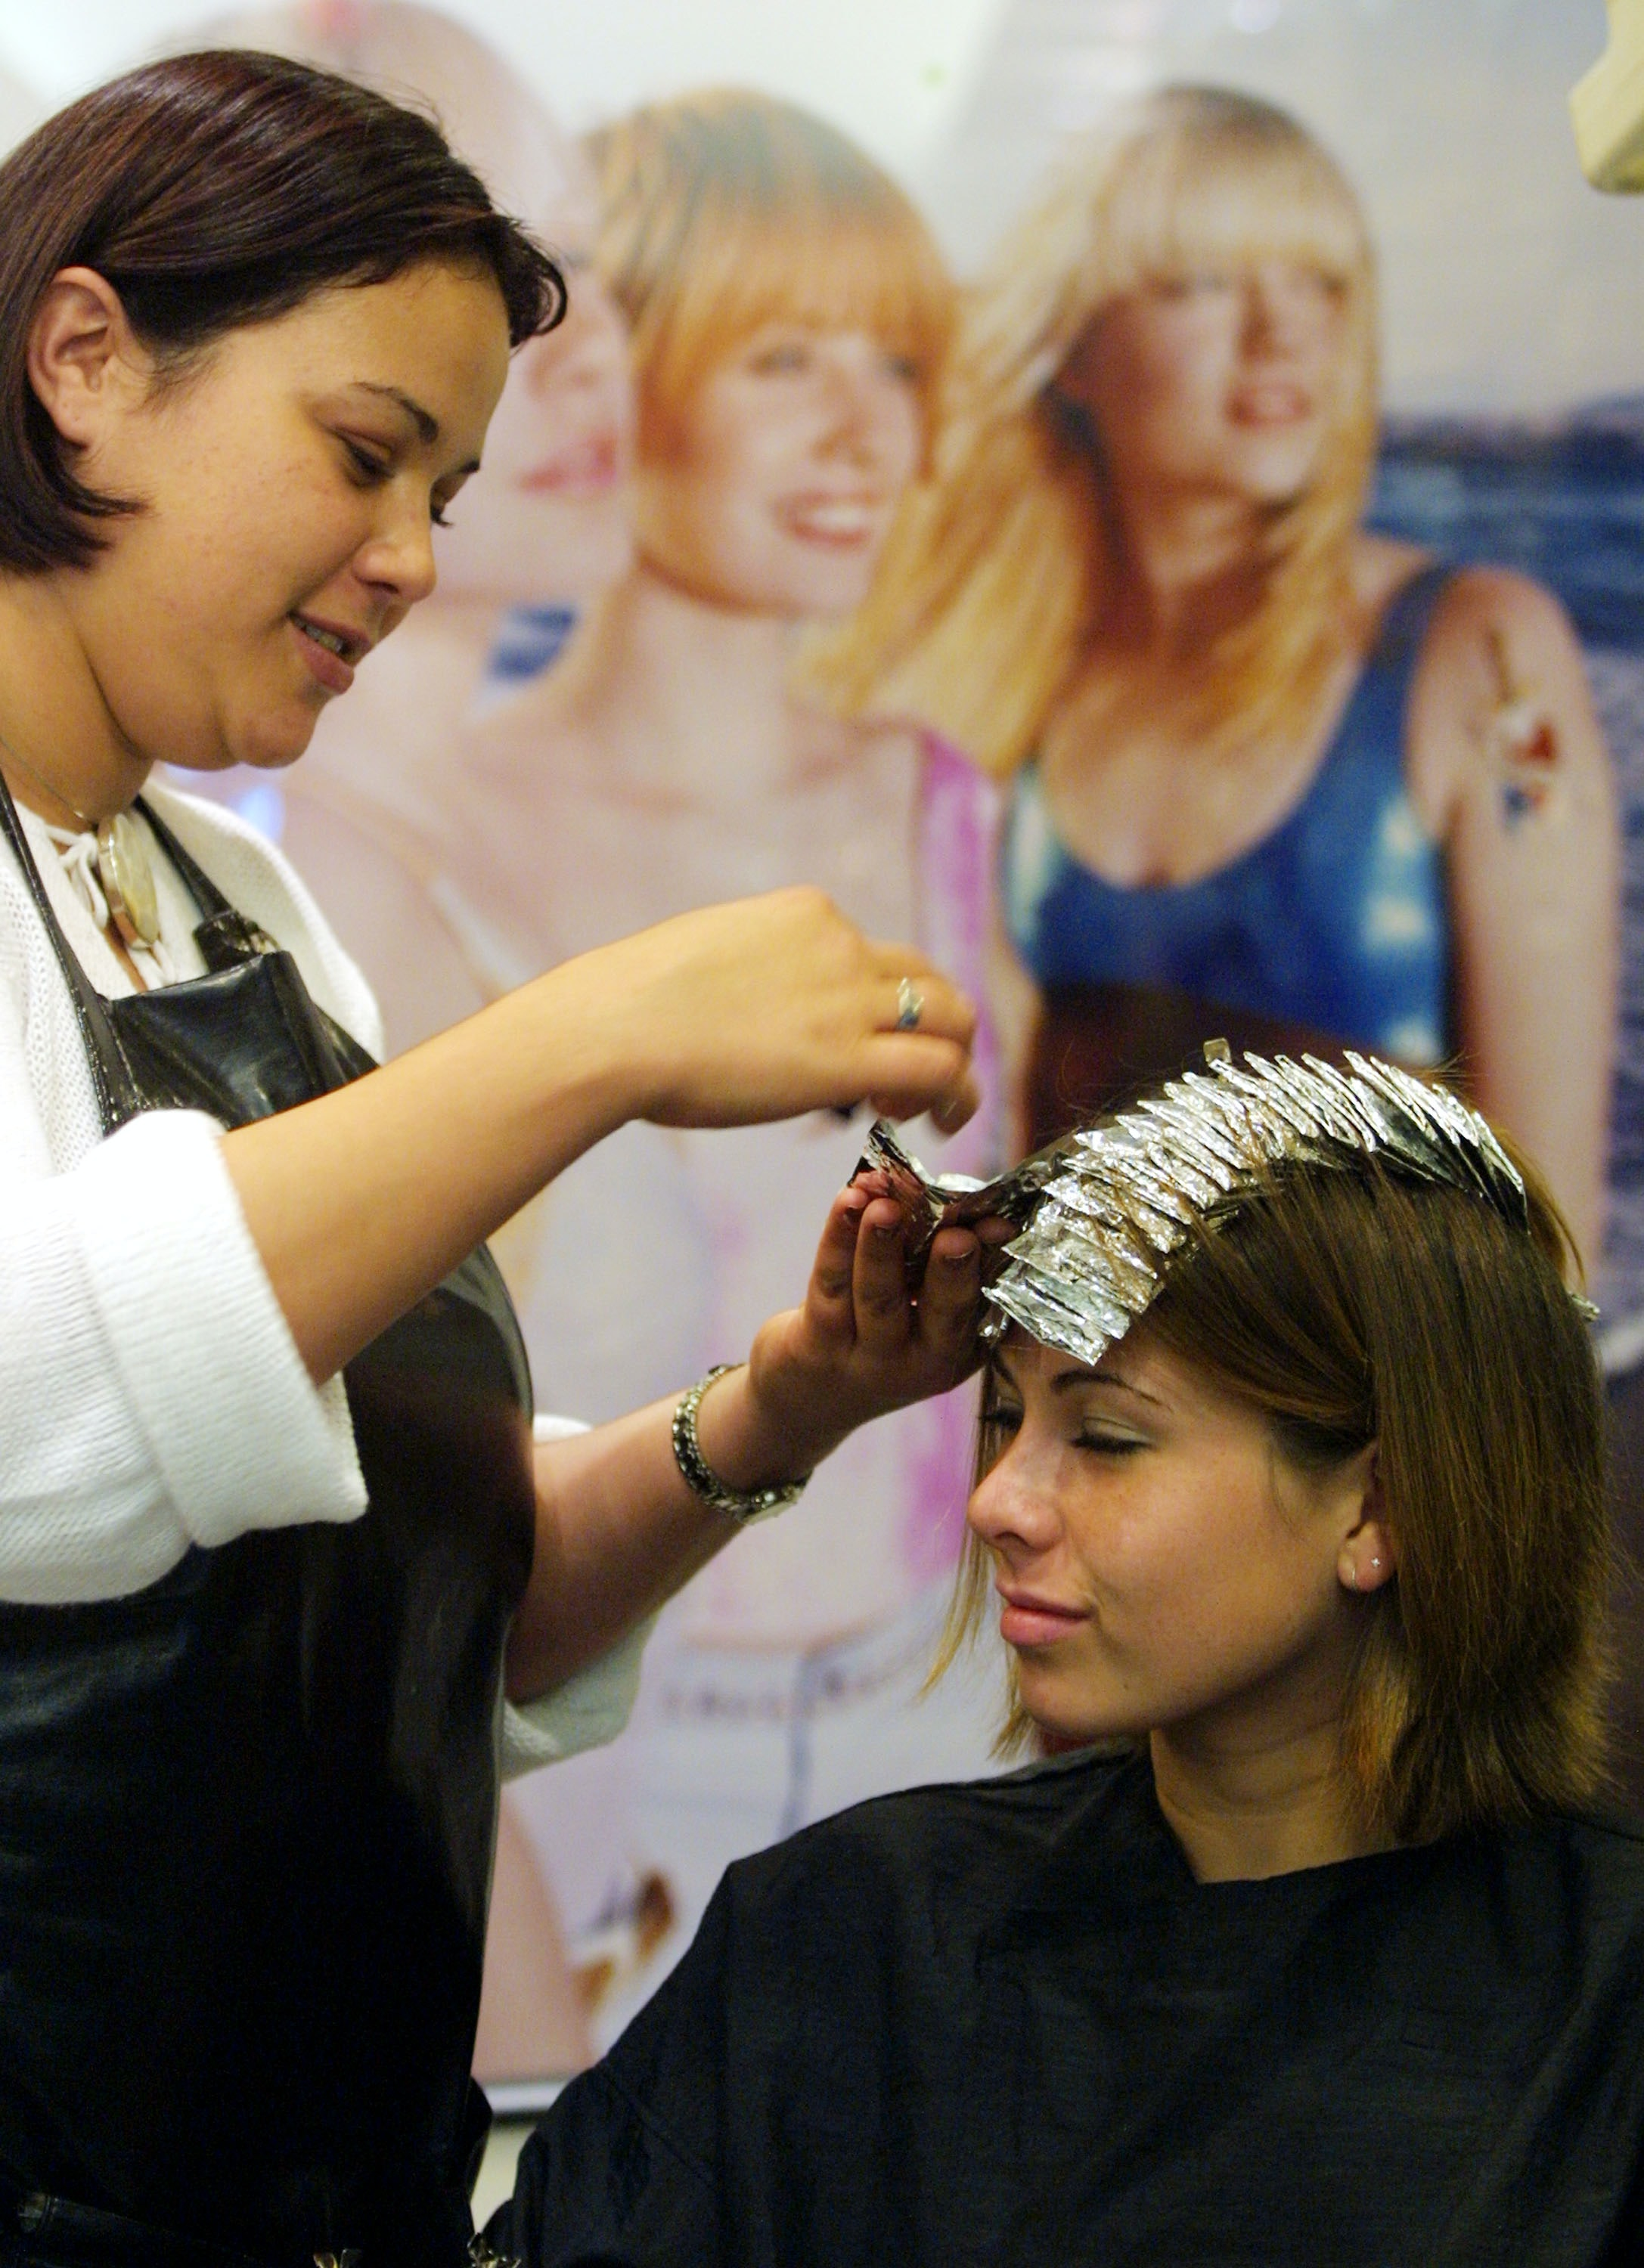 7 Things To Never Ask For When Getting Your Hair Cut